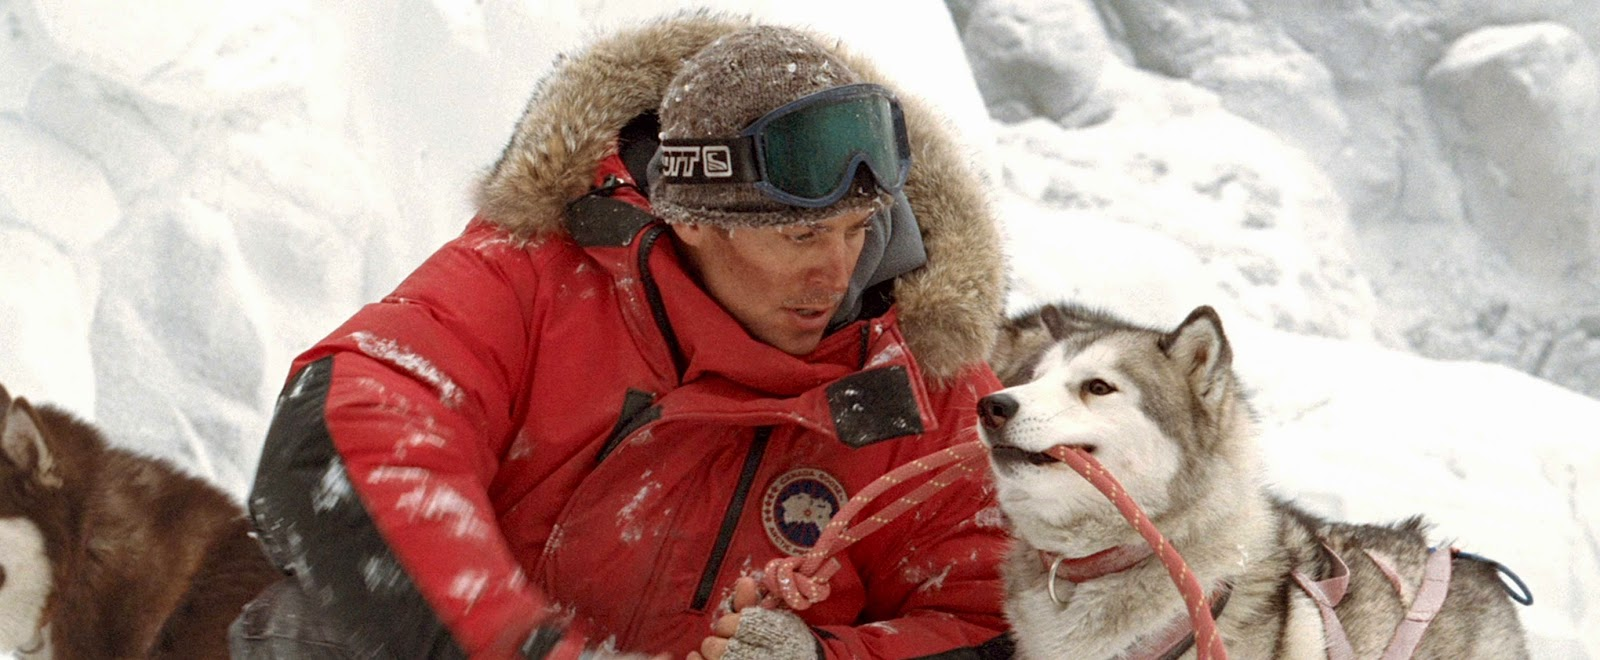 The World Of CsorEsz: What's Next On My List? Eight Below